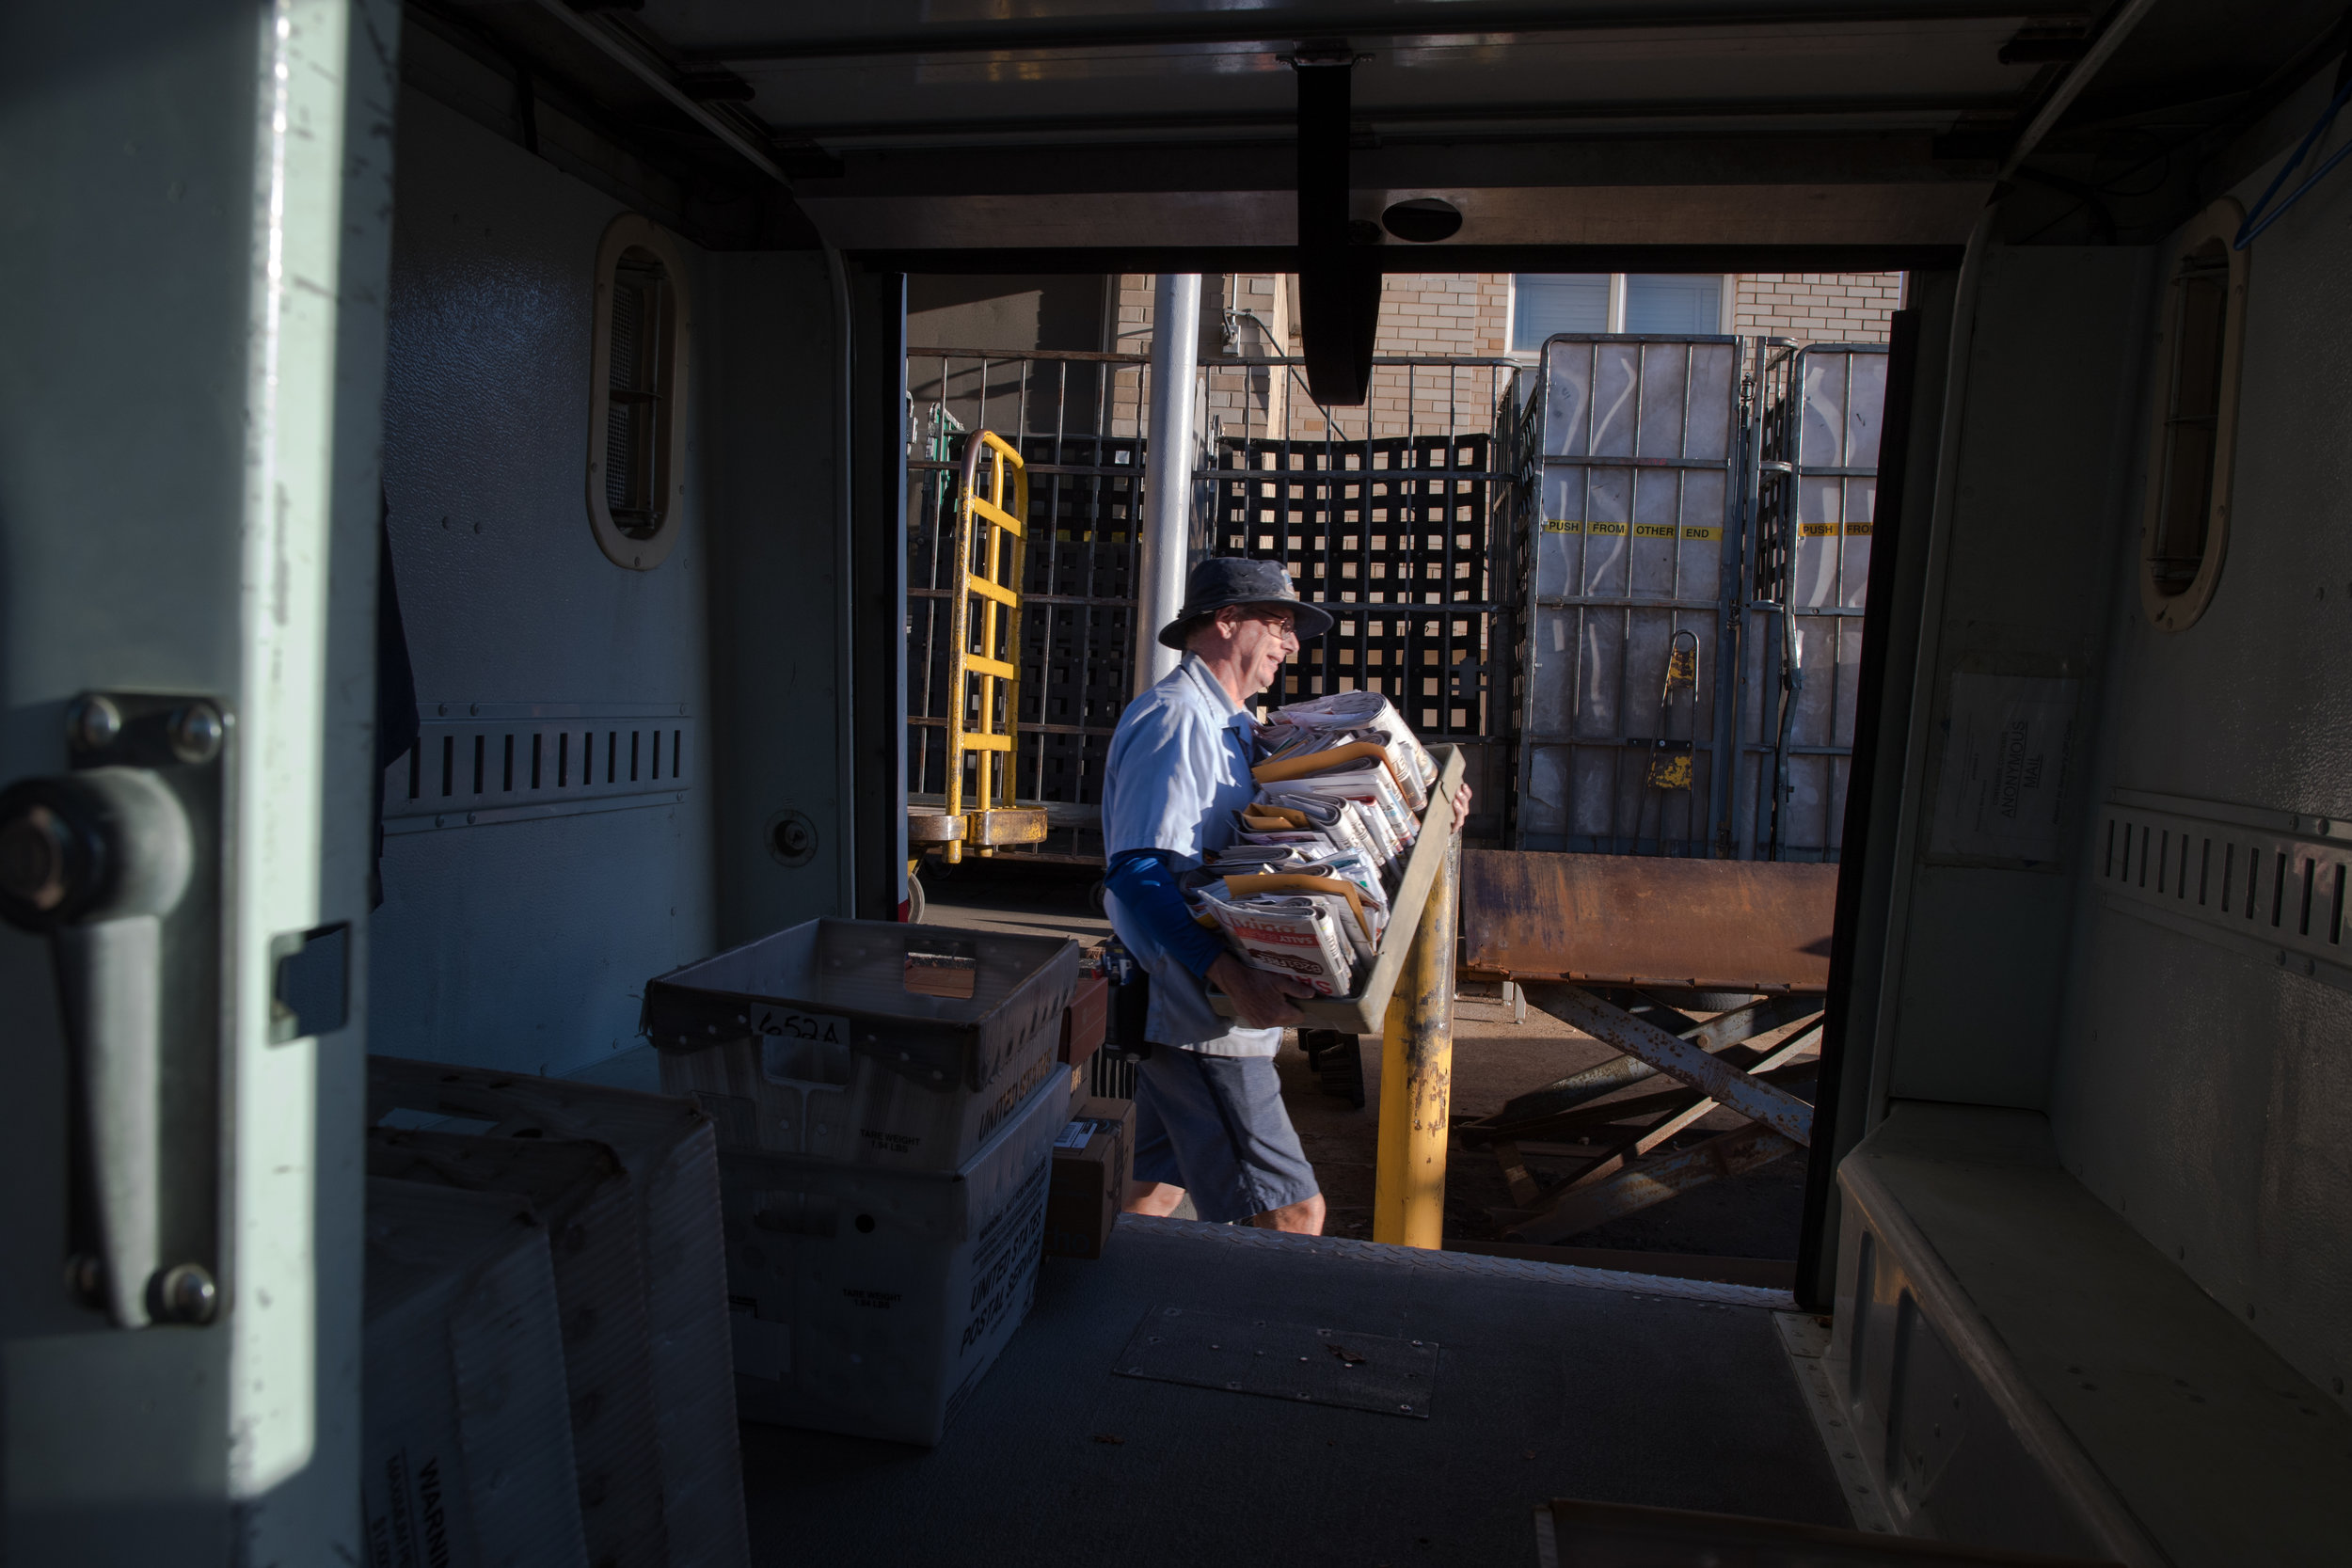 Greg loading his truck before heading out. Greg has driven the same truck since 1994.